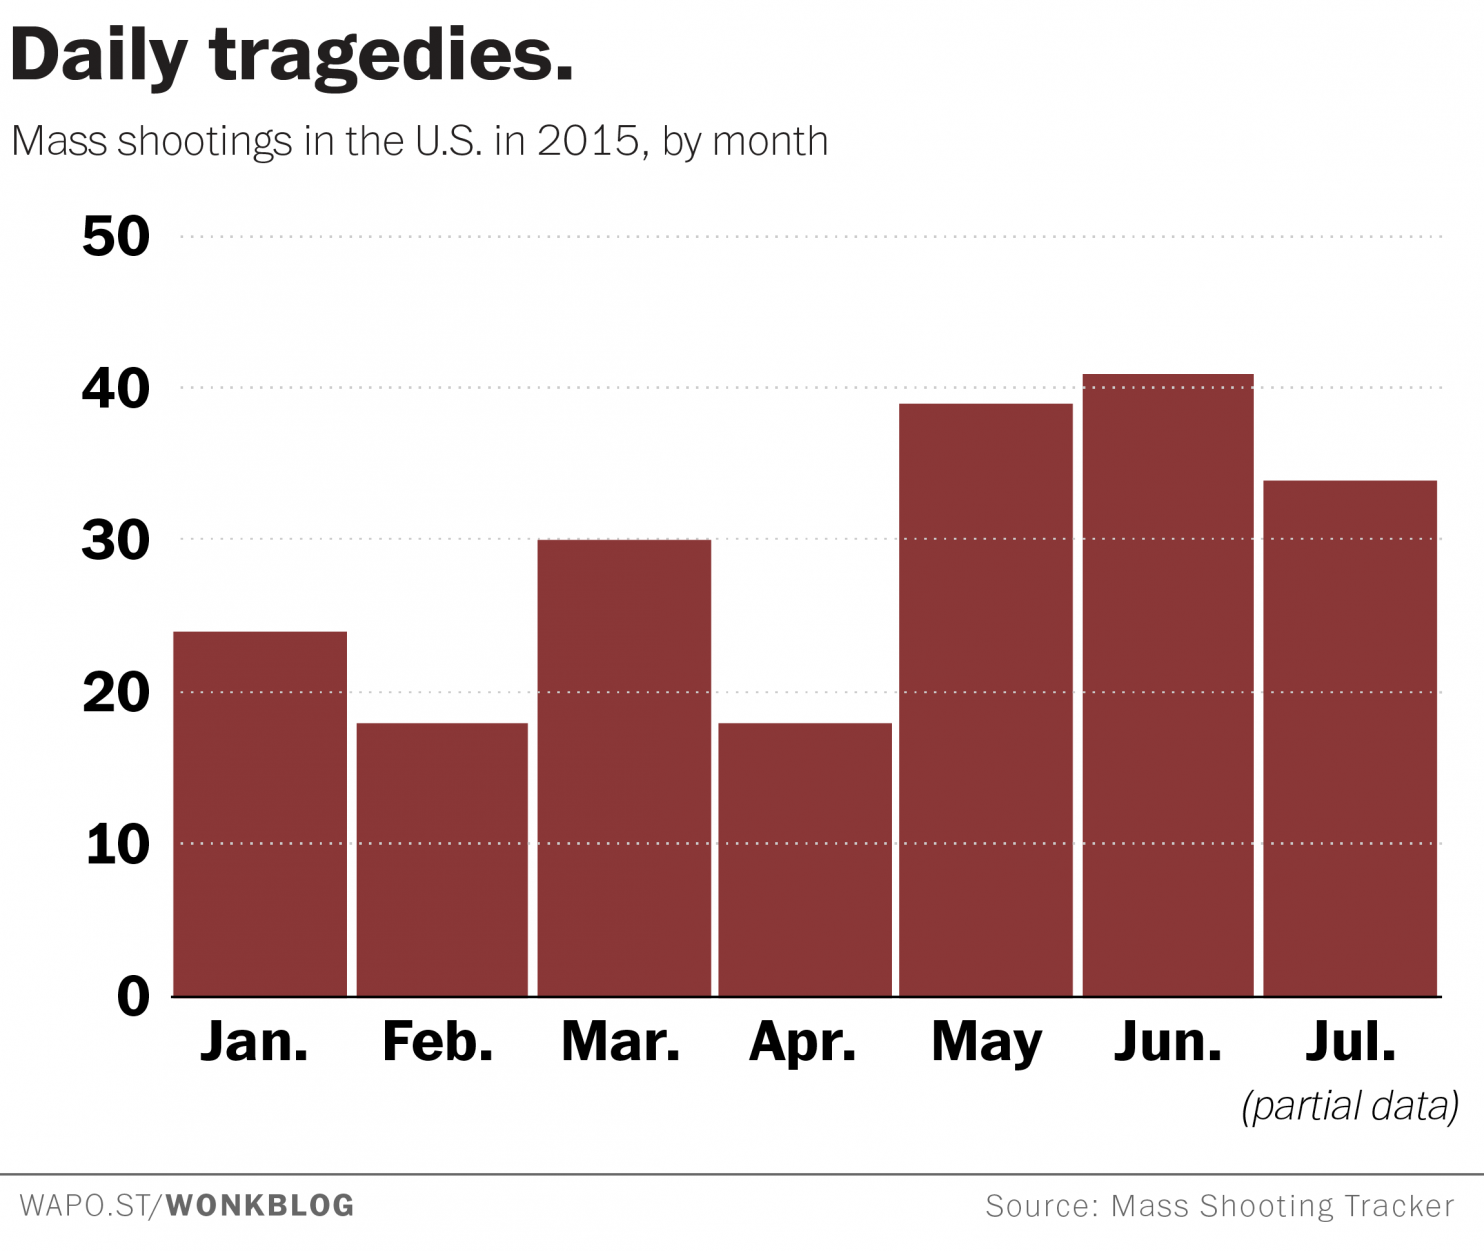 There Have Been 204 Mass Shootings And 204 Days In 2015 So Far